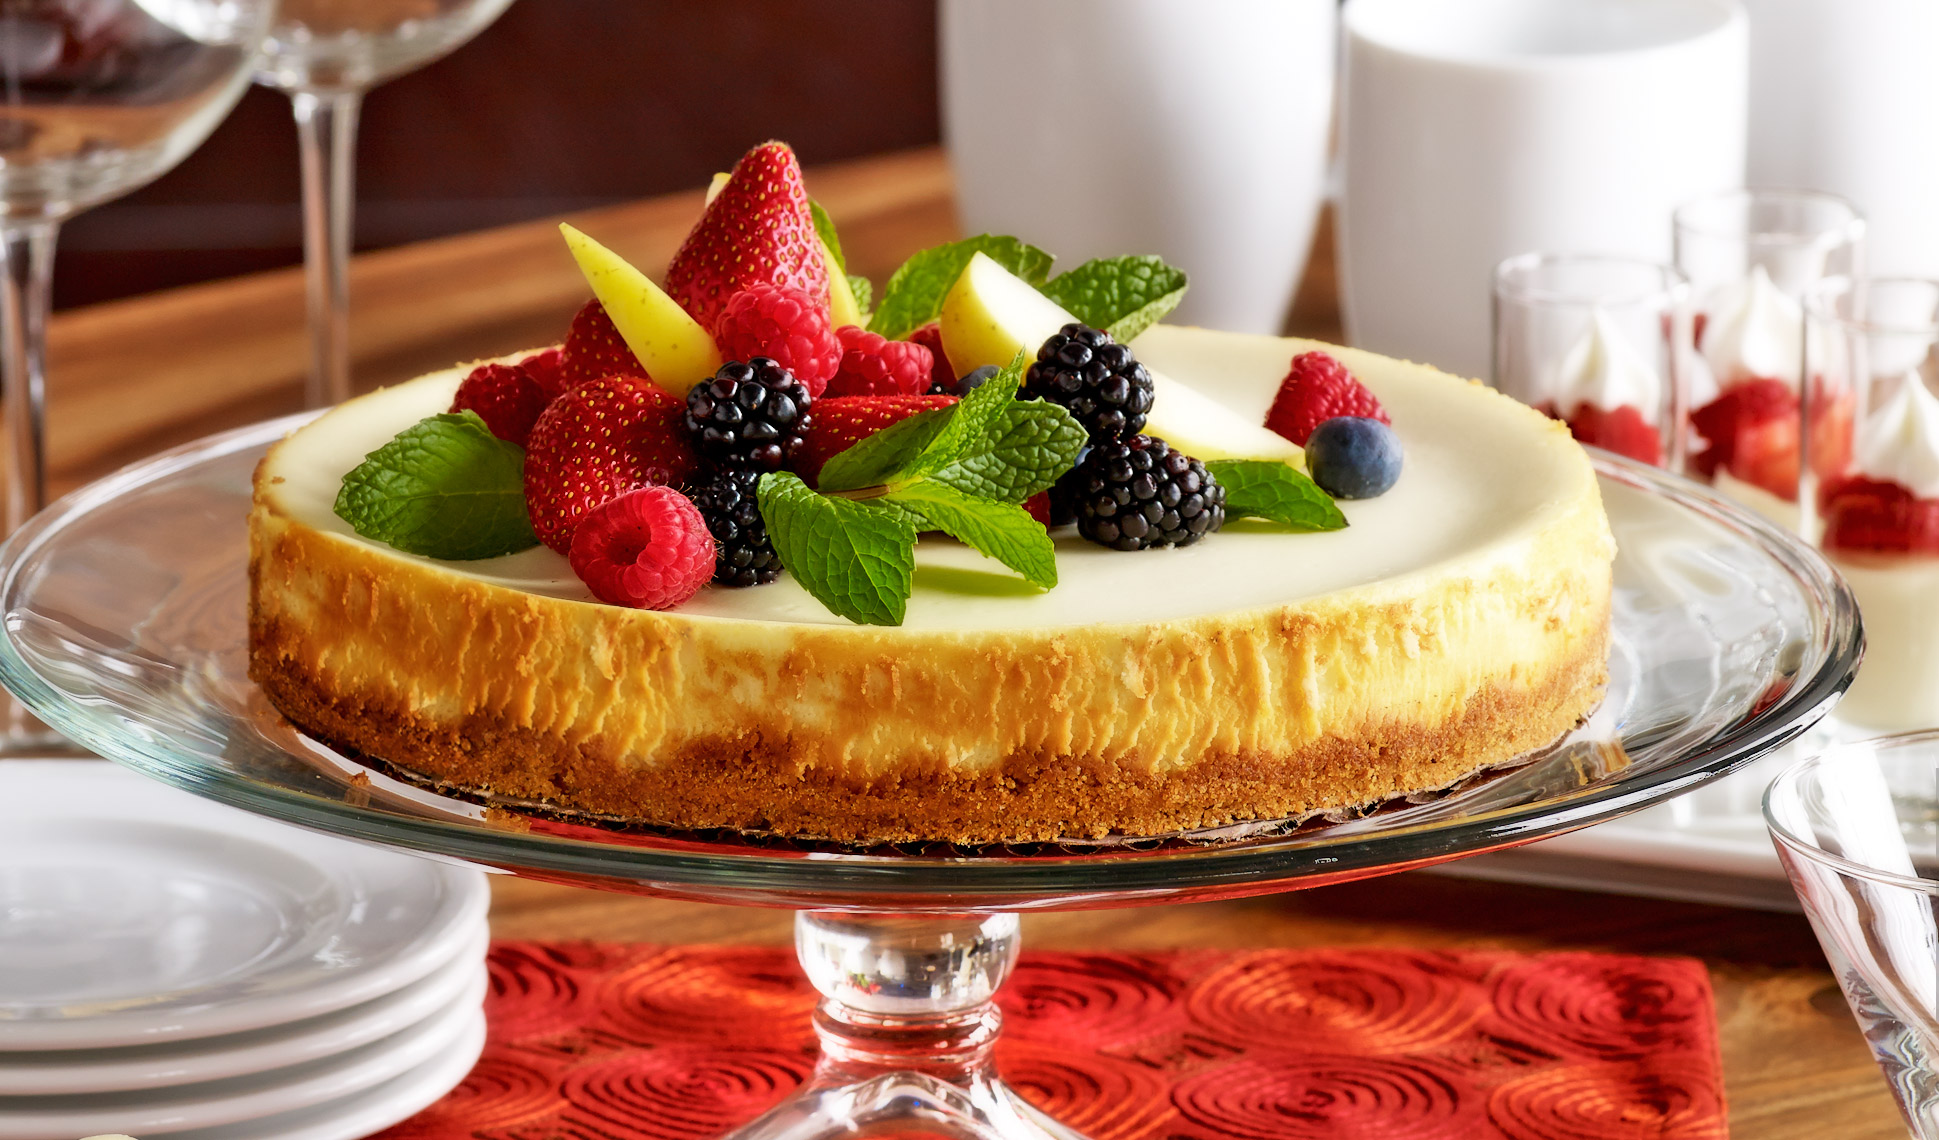 Libbey_Cheesecake_Food_Fruit